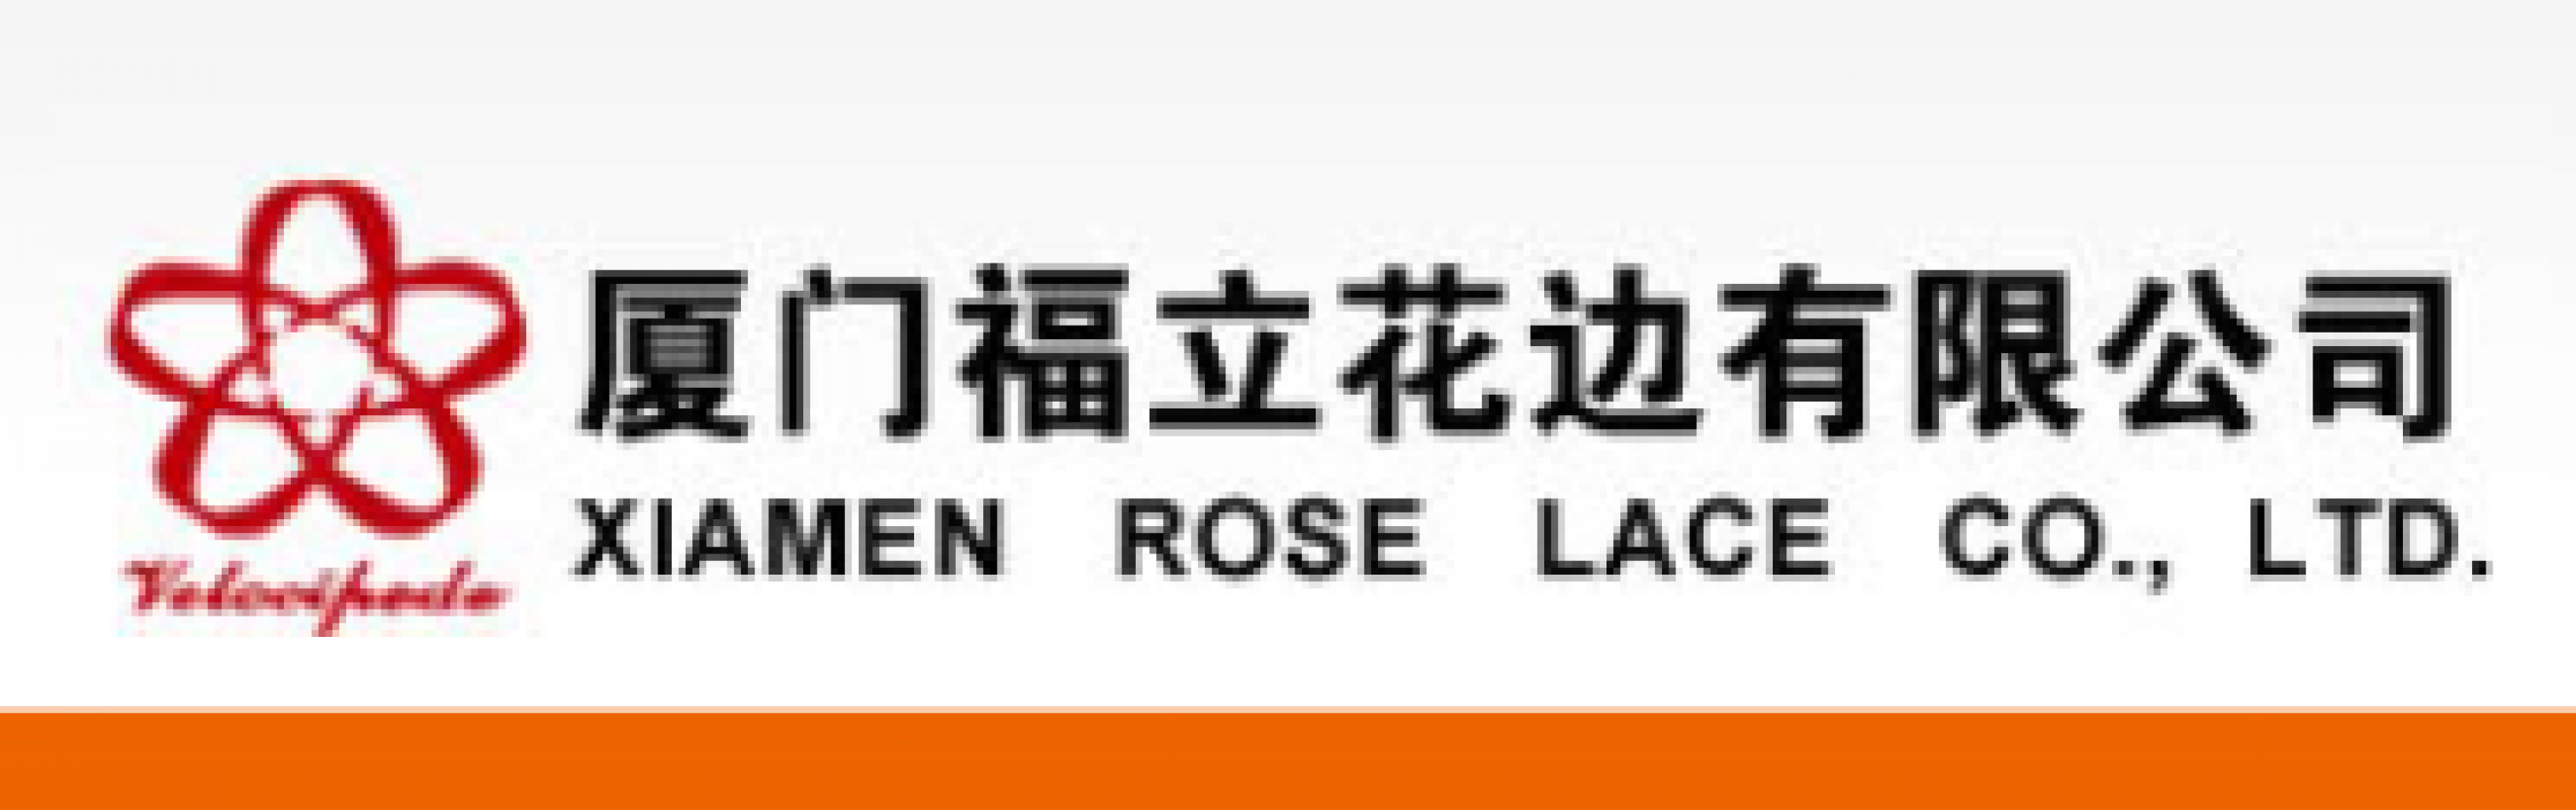 XIAMEN ROSE LACE CO., LTD